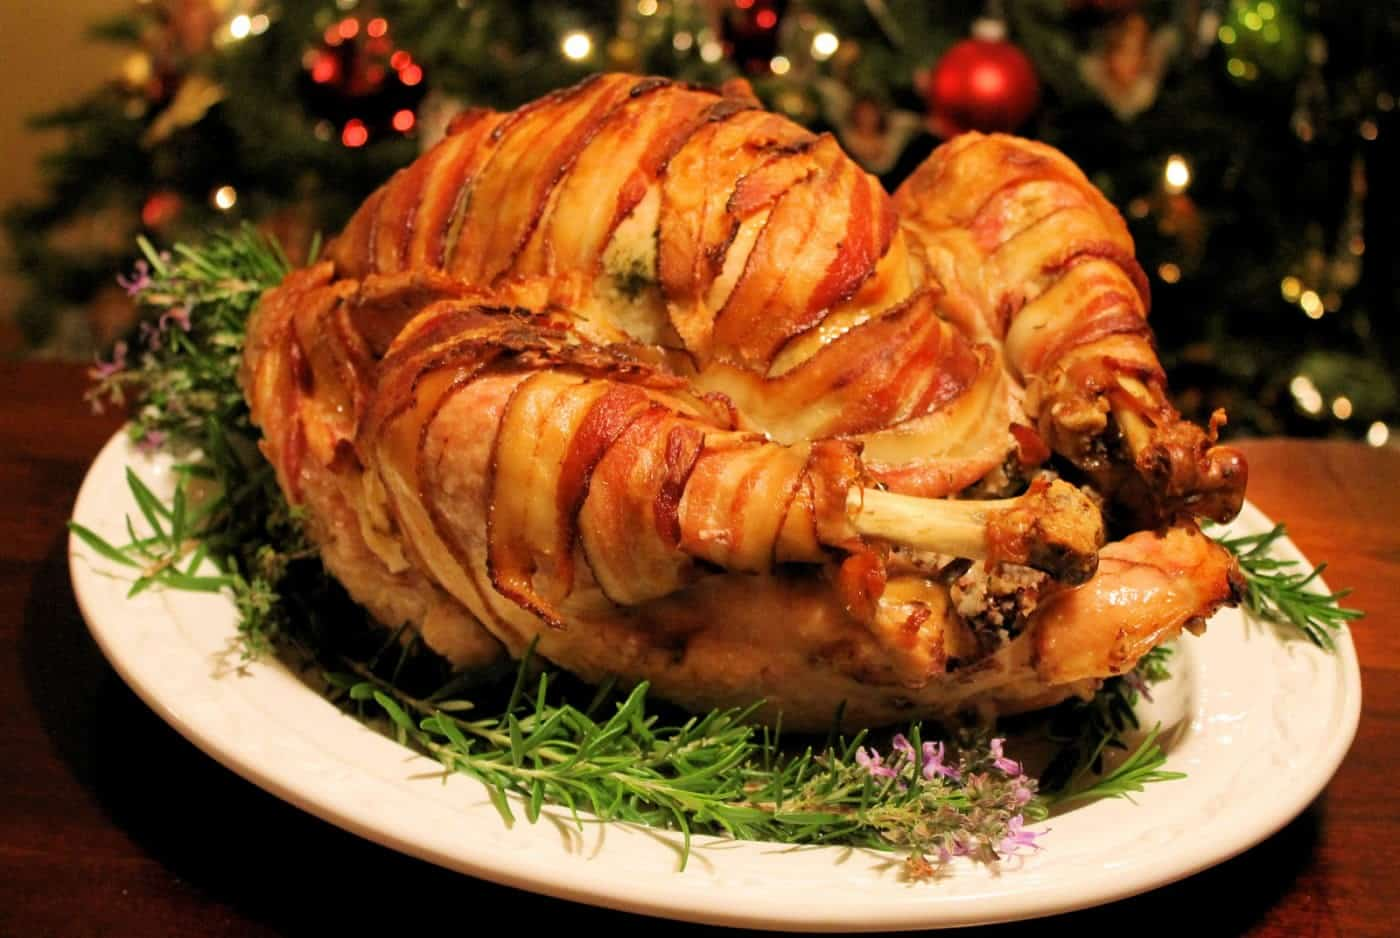 Guest: A Maple-Glazed, Bacon-Wrapped Turkey For Thanksgiving!